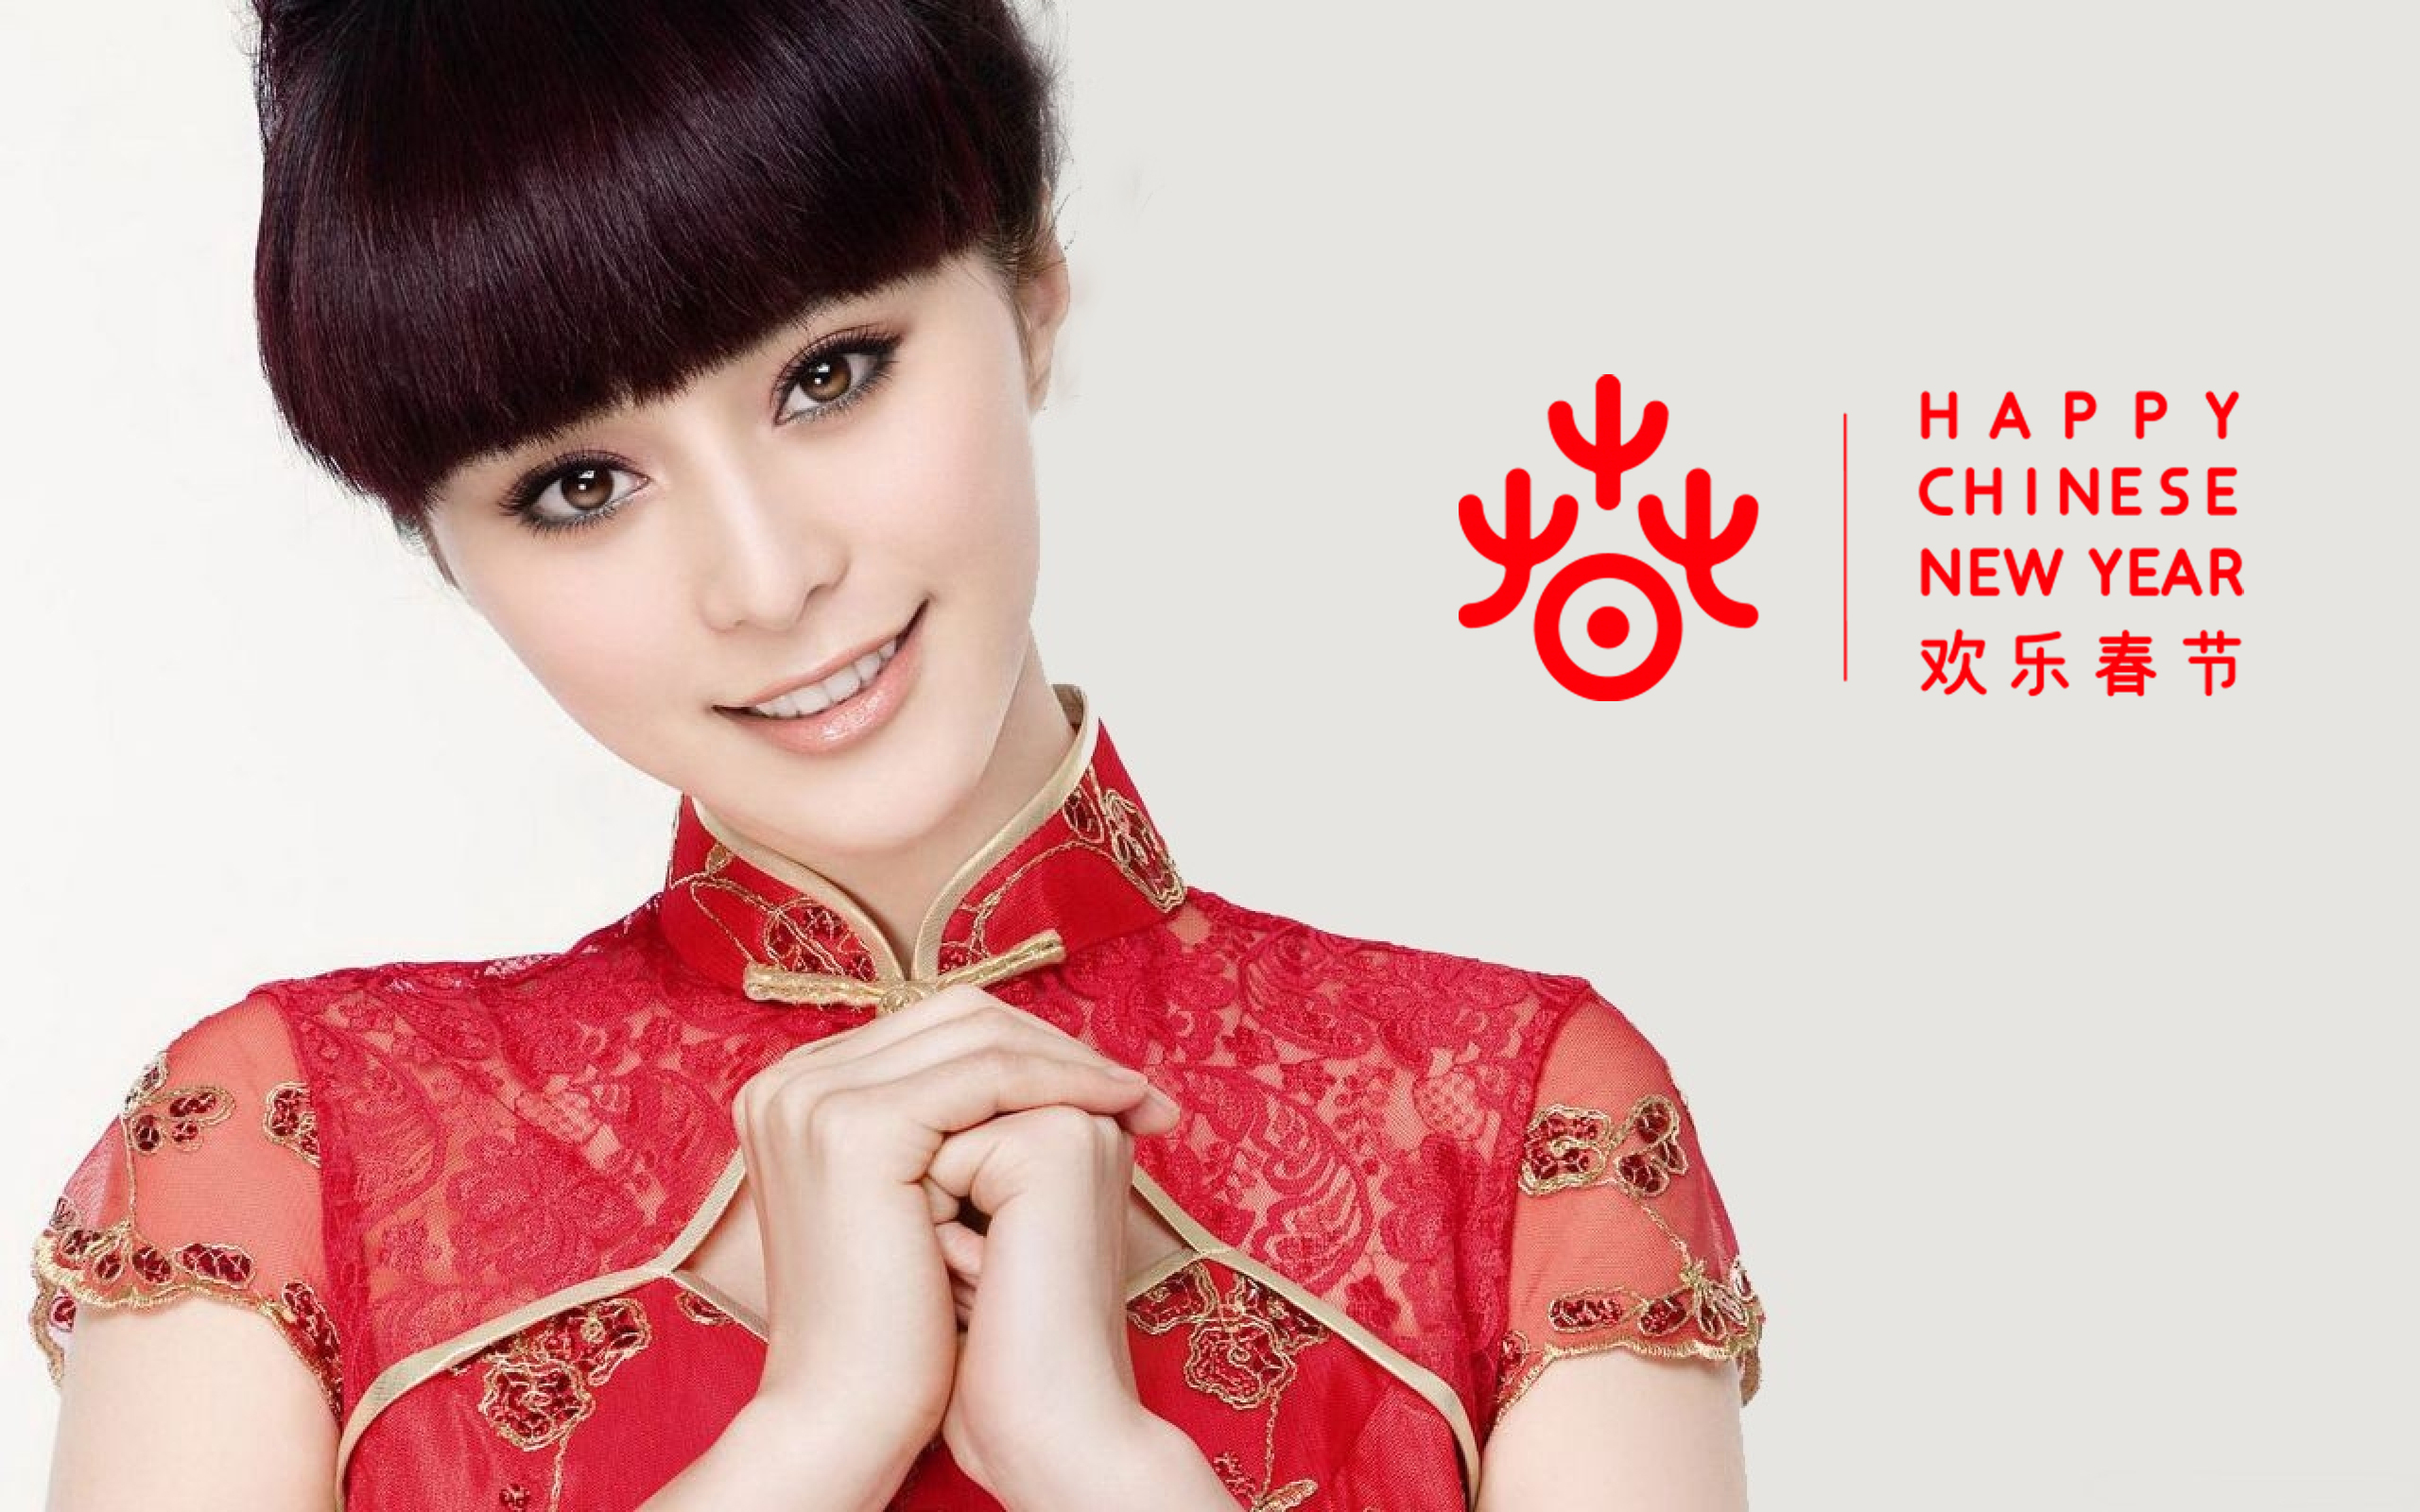 cute chinese girl wallpaper for new year greeting card | hd